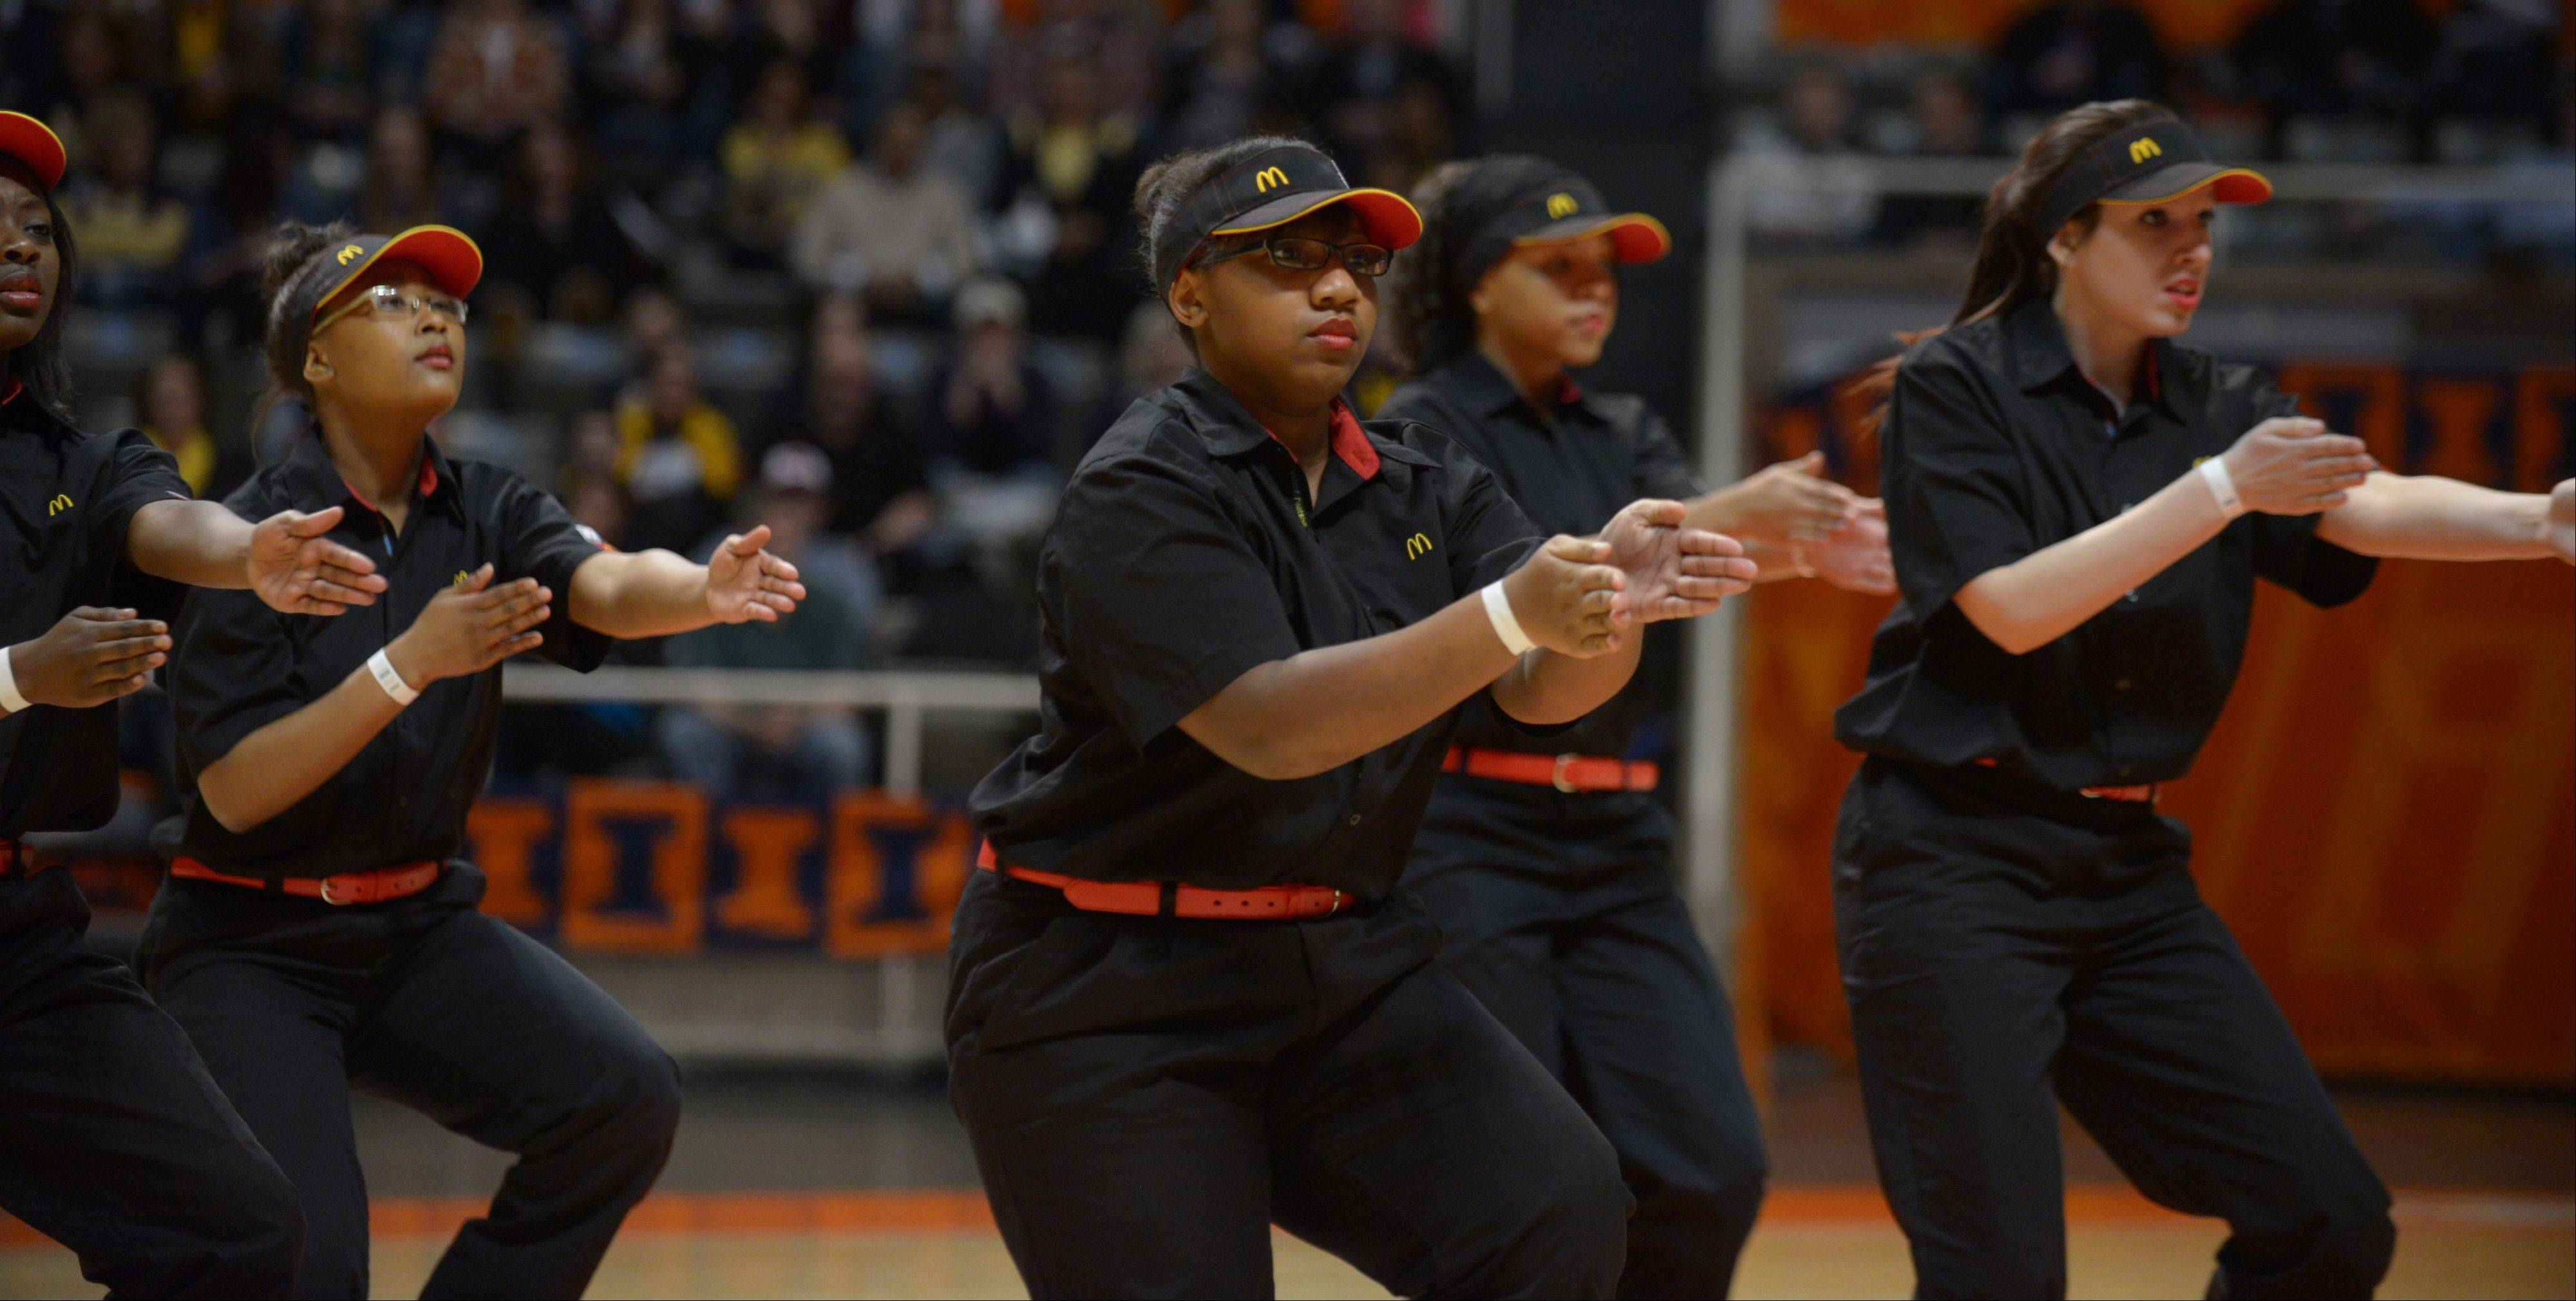 The Downers Grove North AAA Step team took part in the Illinois Drill Team Association State Championships, held at University of Illinois Assembly Hall Saturday.